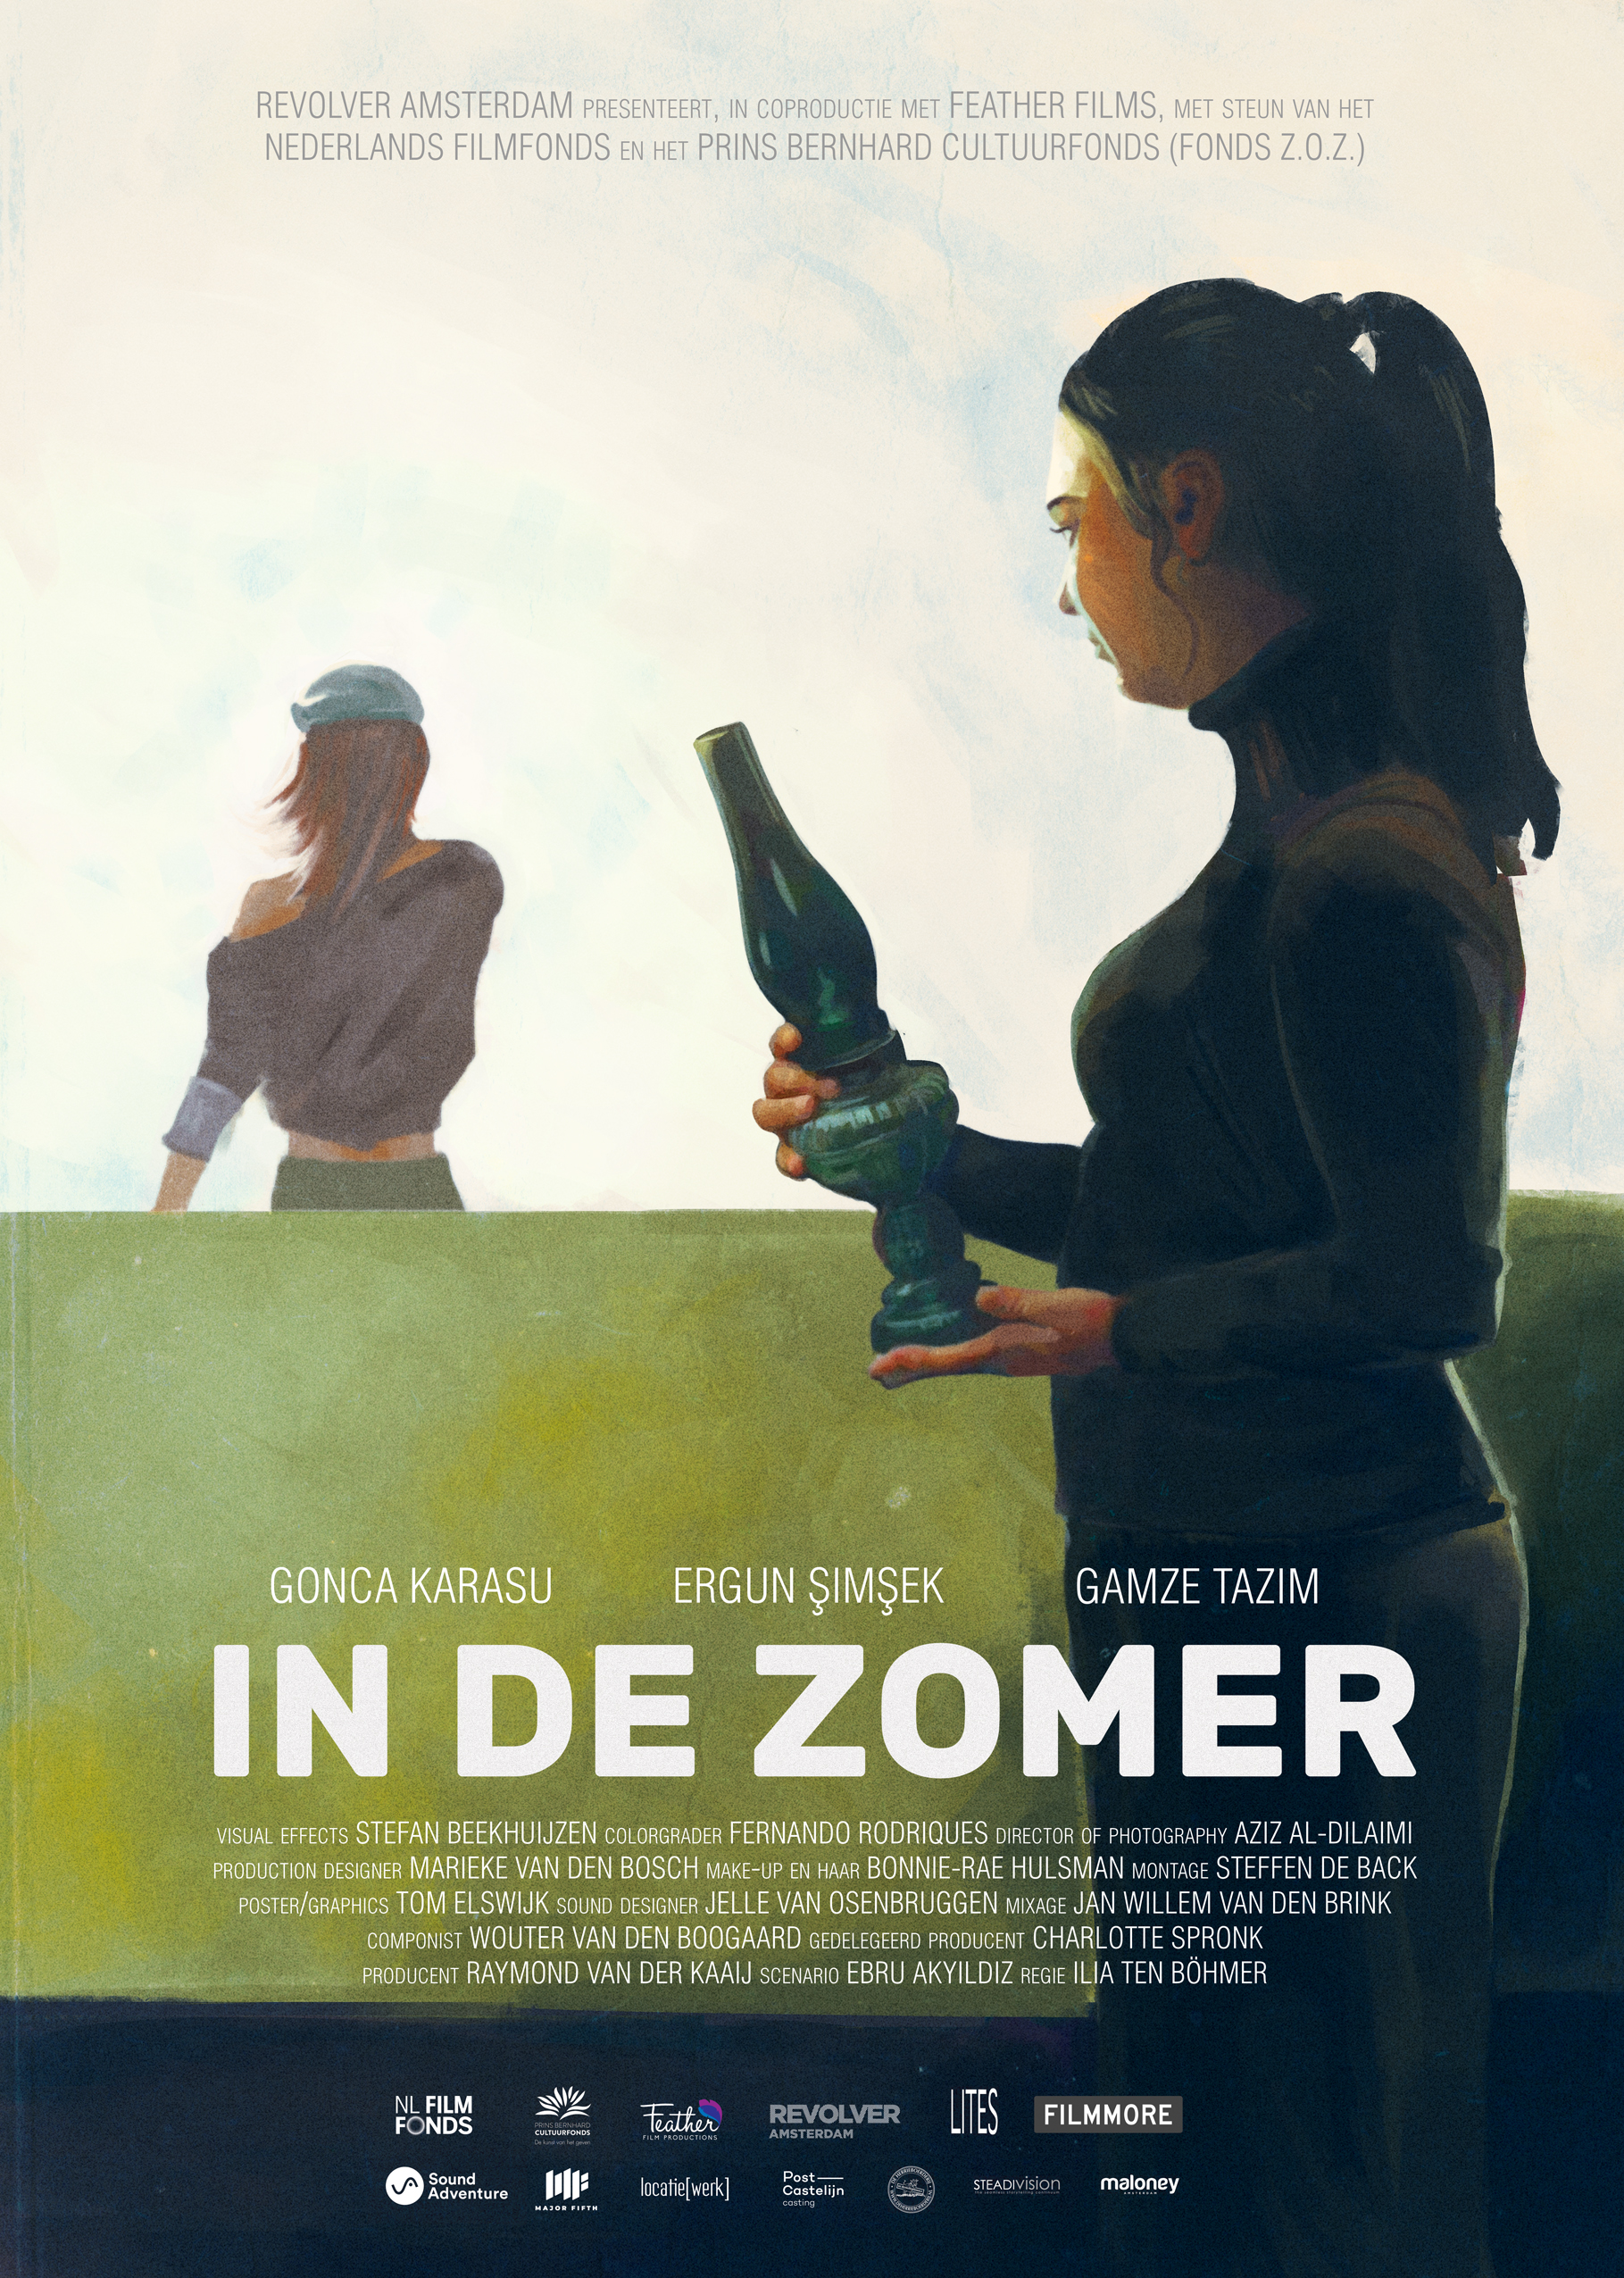 In De Zomer - Director Ilia Ten Bohmer & Producer Charlotte Spronk contacted me during the pre-production of their new award-winning film